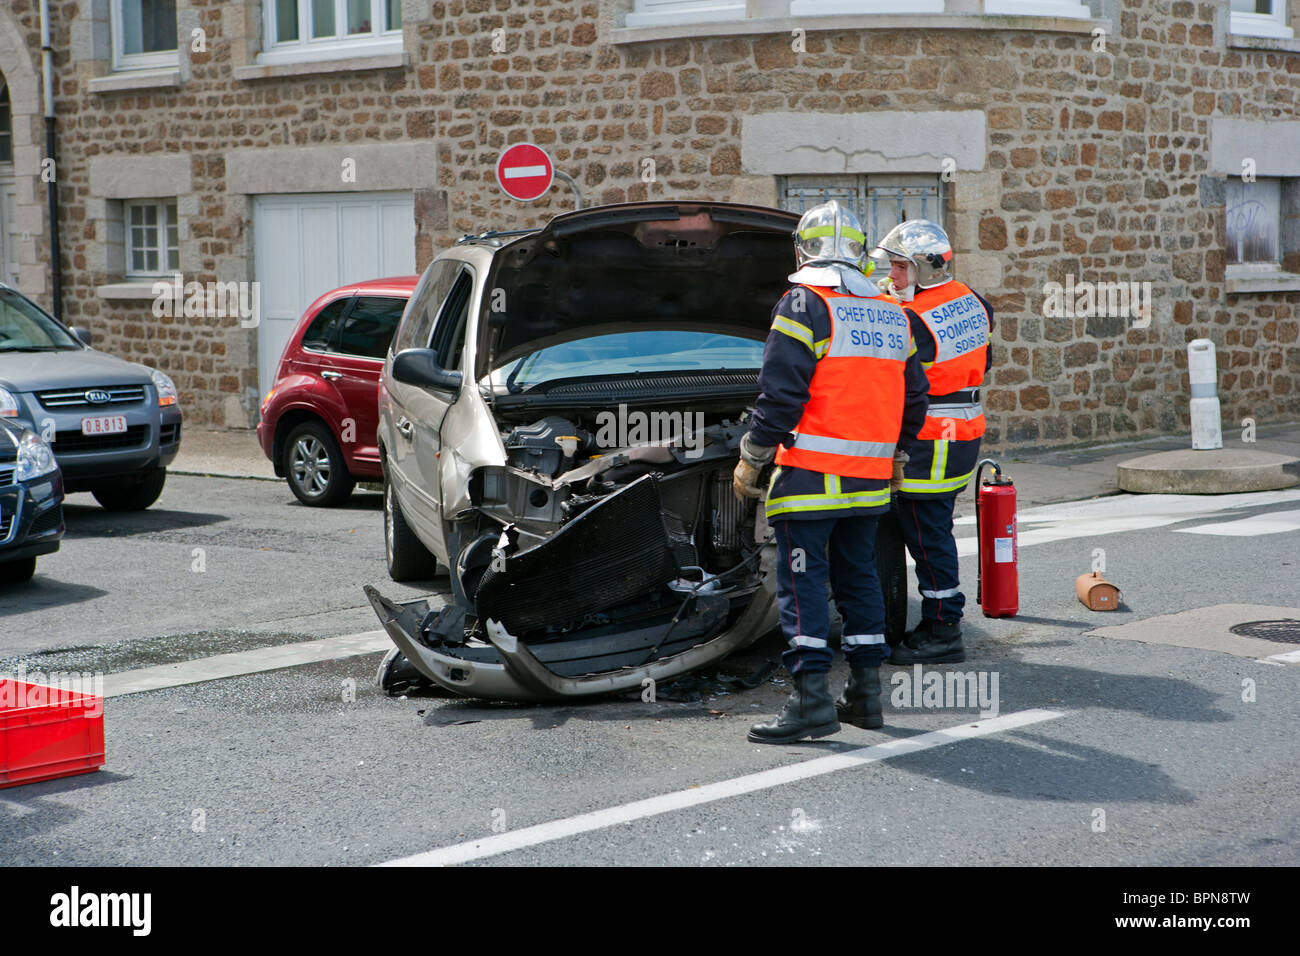 France Road Accident Stockfotos & France Road Accident Bilder - Alamy